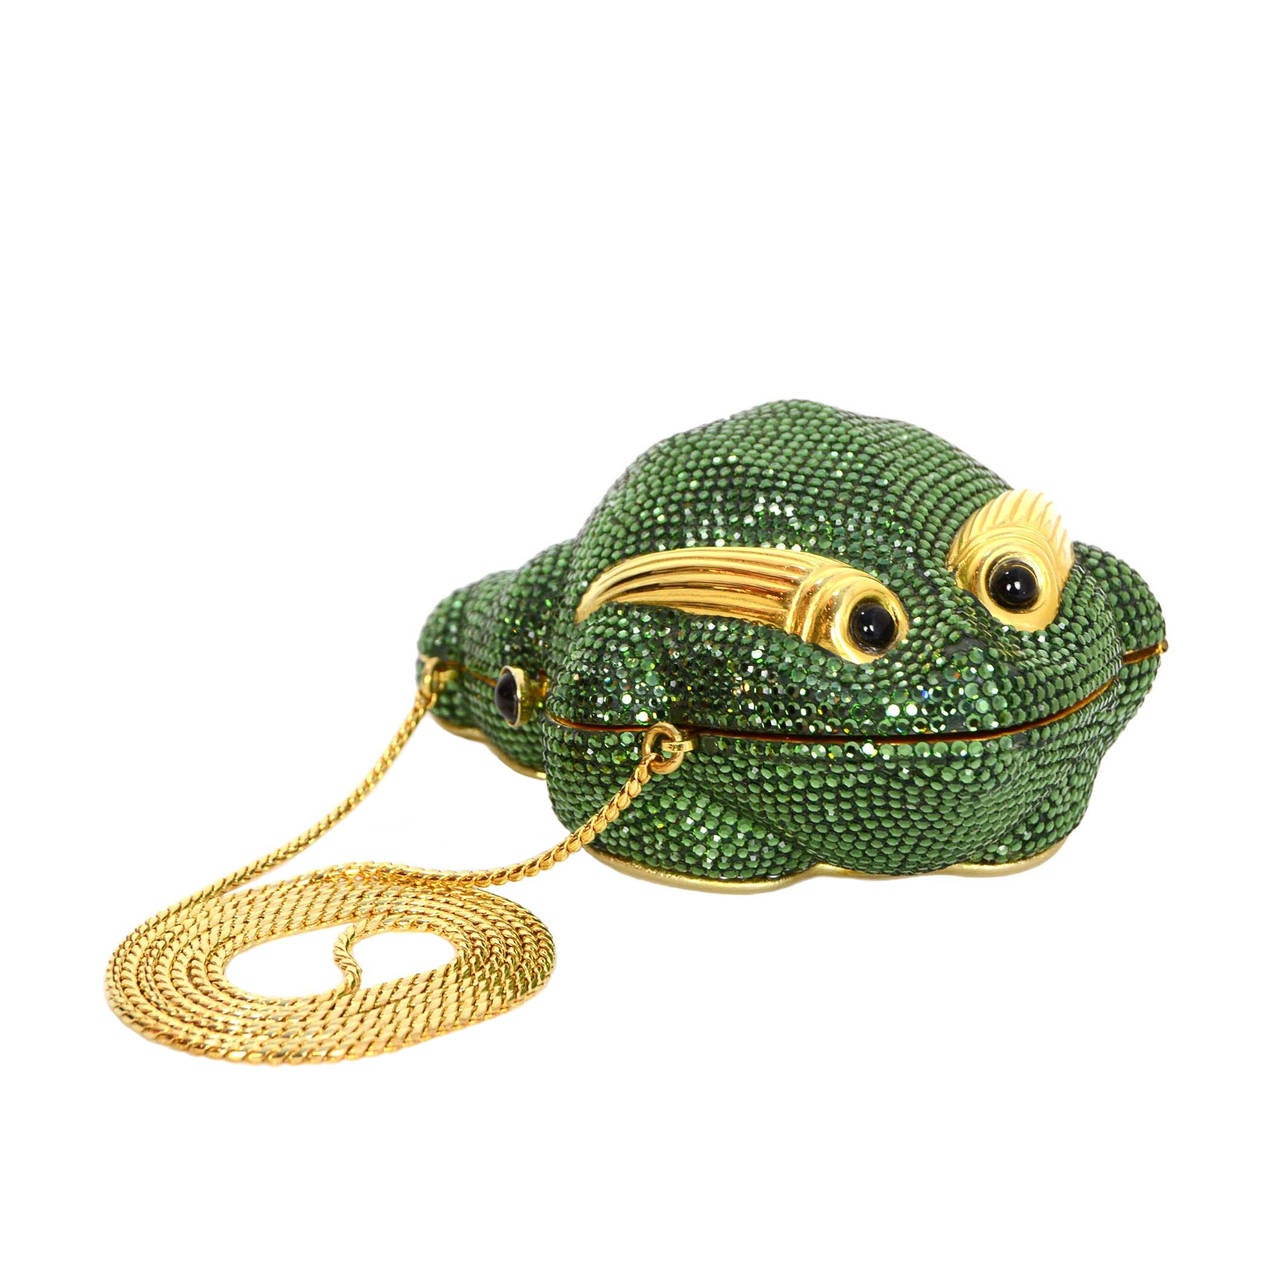 Judith Leiber Green Crystal Frog Minaudiere Bag GHW For Sale